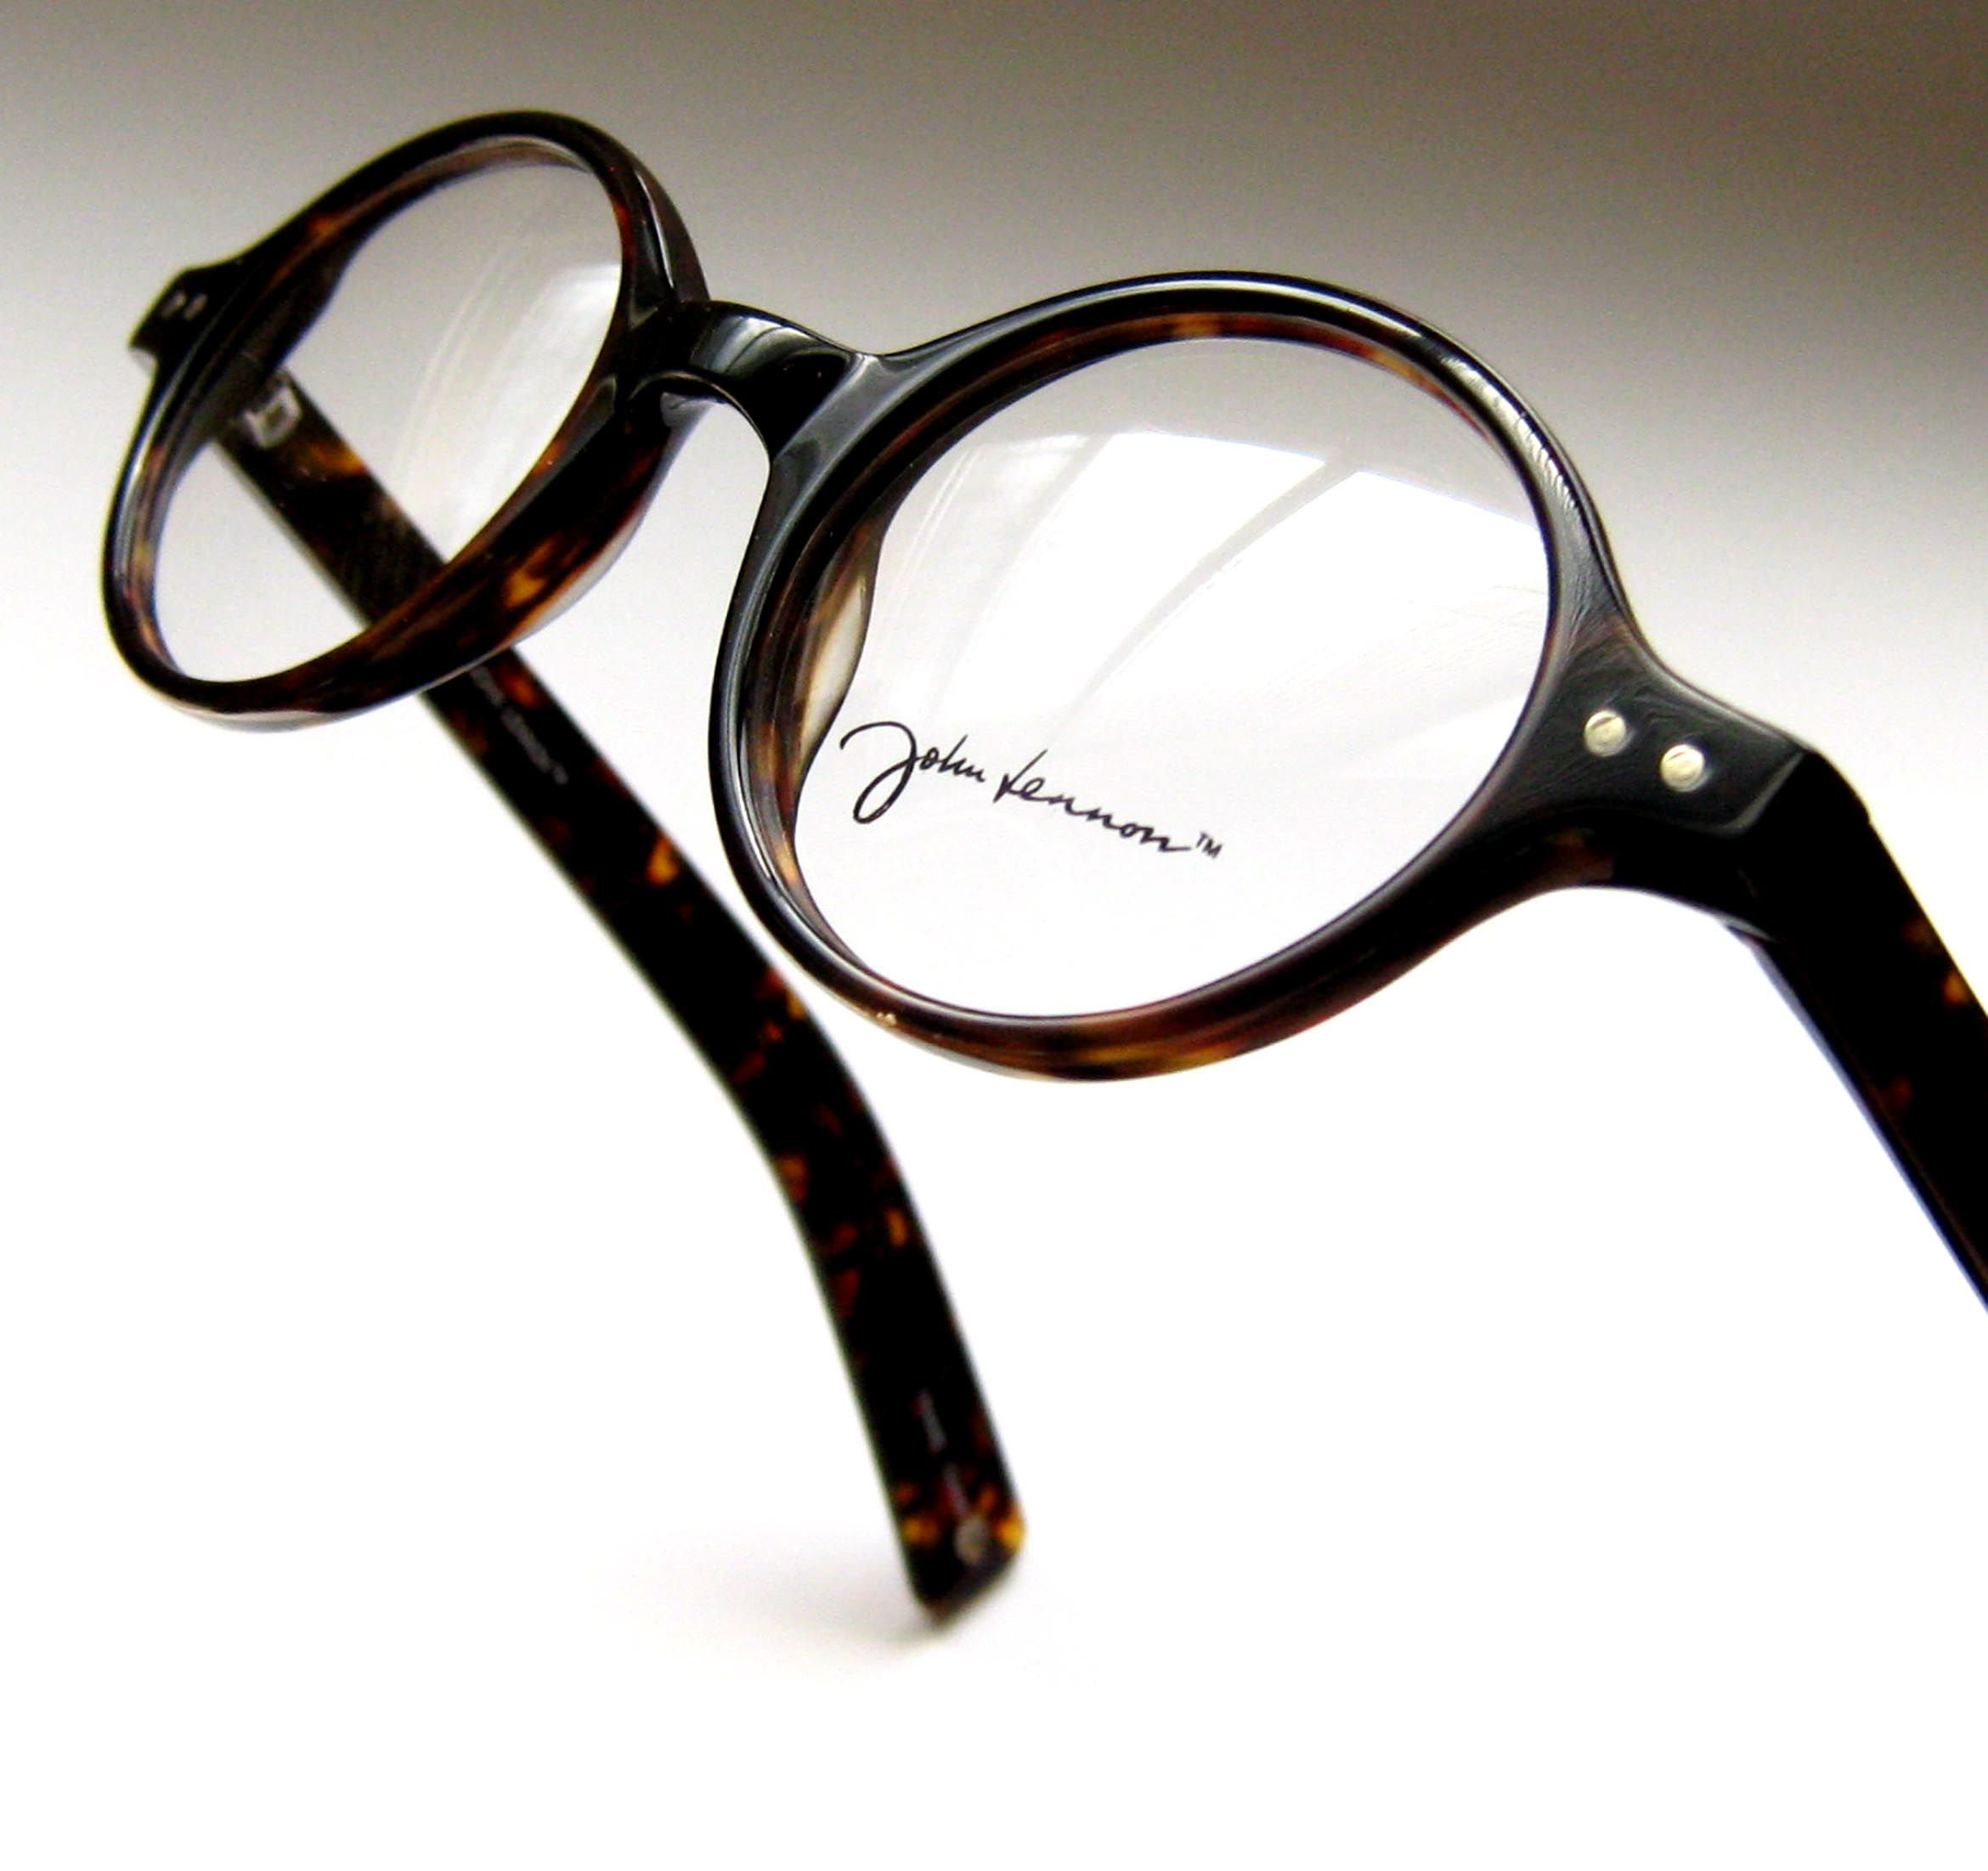 fcc3a6aa92 John Lennon Eyewear. This style is called  Boogie . Black or Tortoise round  eyeglass frames with paddle temples. Just like the 1960 s.